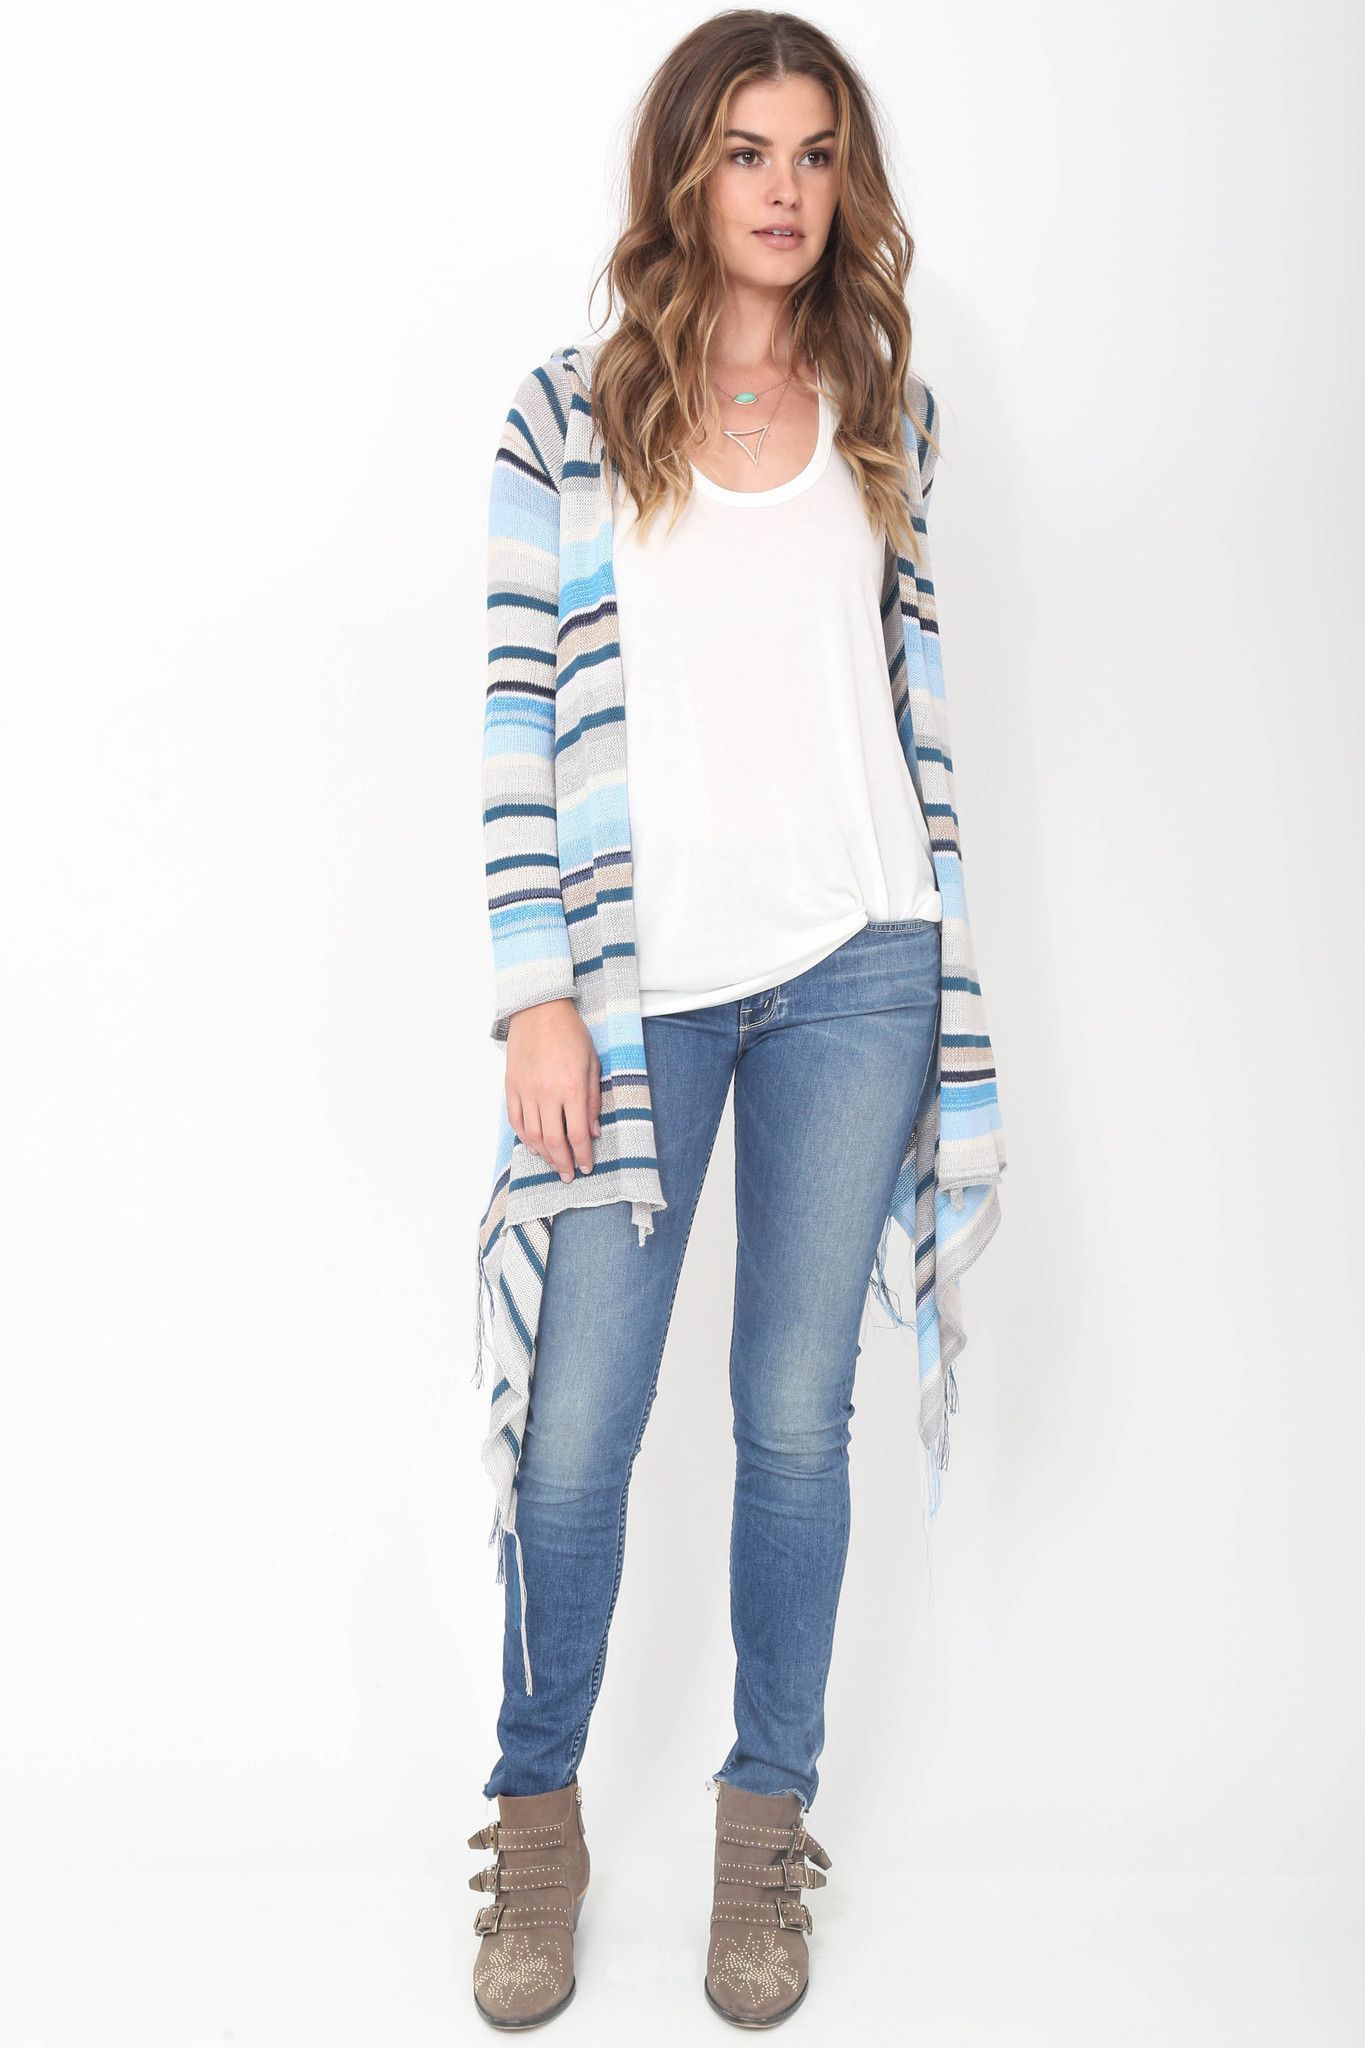 Goddis Linsey Hooded Wrap w/ fringe in Tranquility